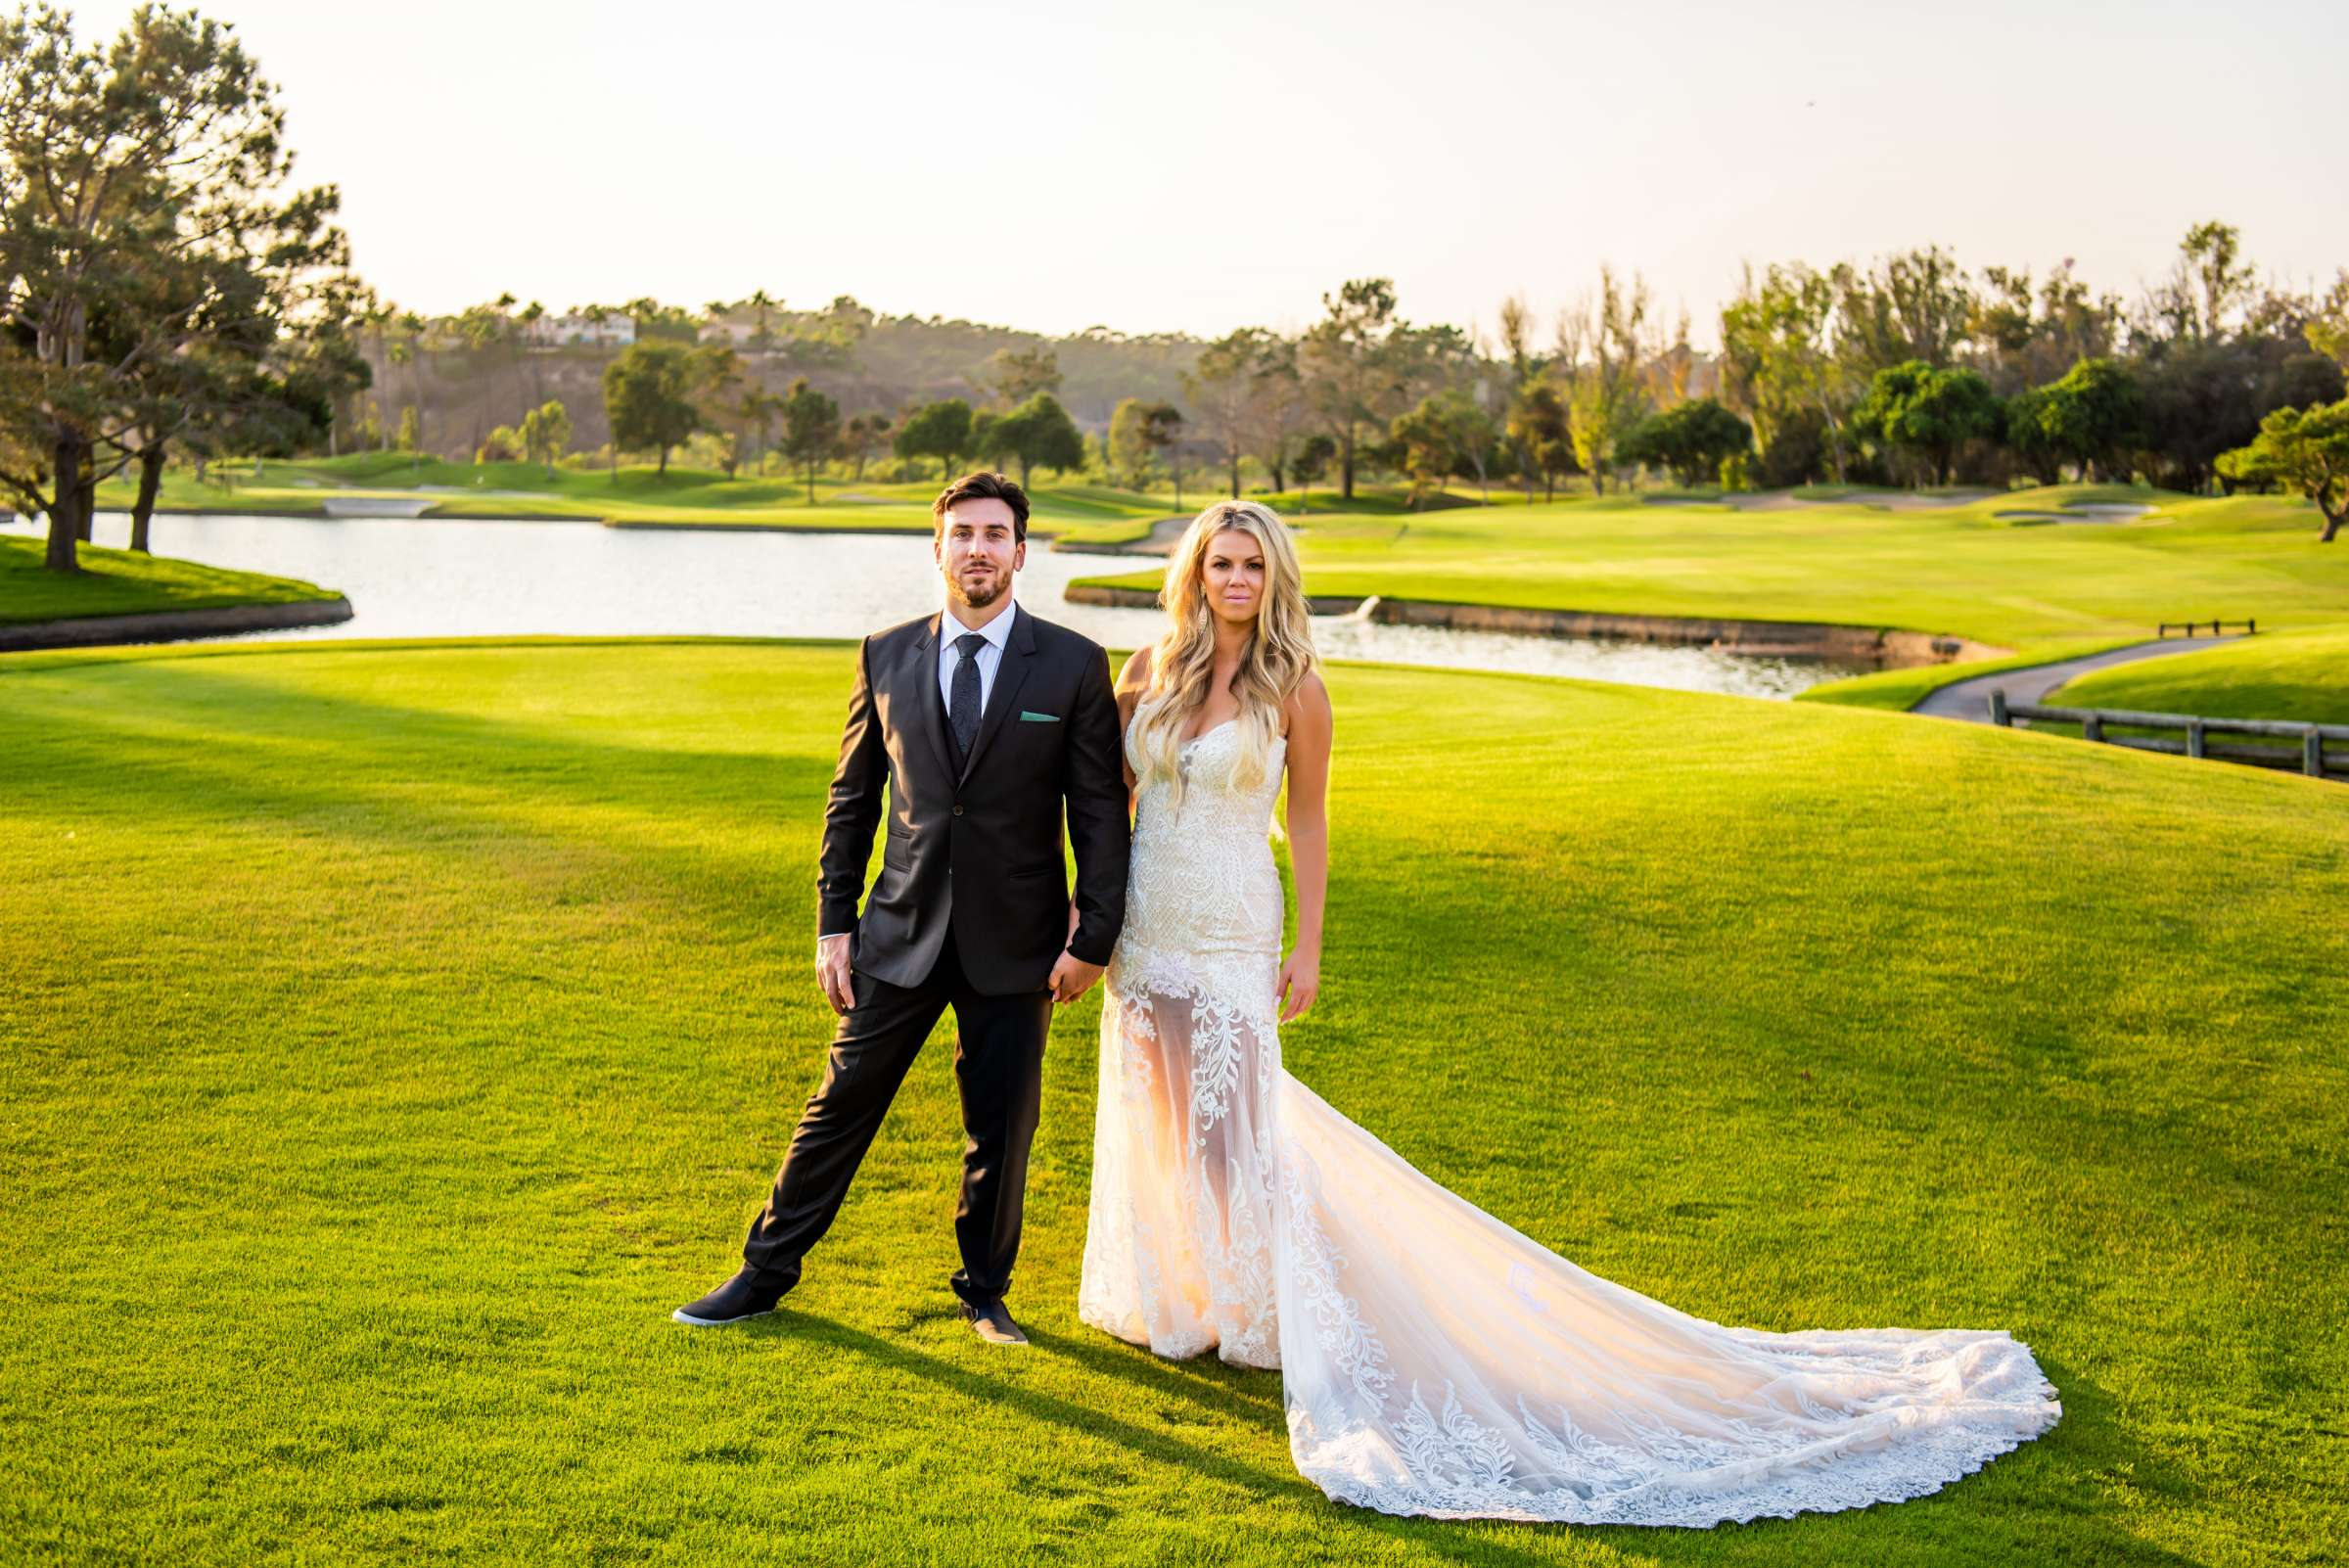 Fairbanks Ranch Country Club Wedding, Ania and David Wedding Photo #489006 by True Photography